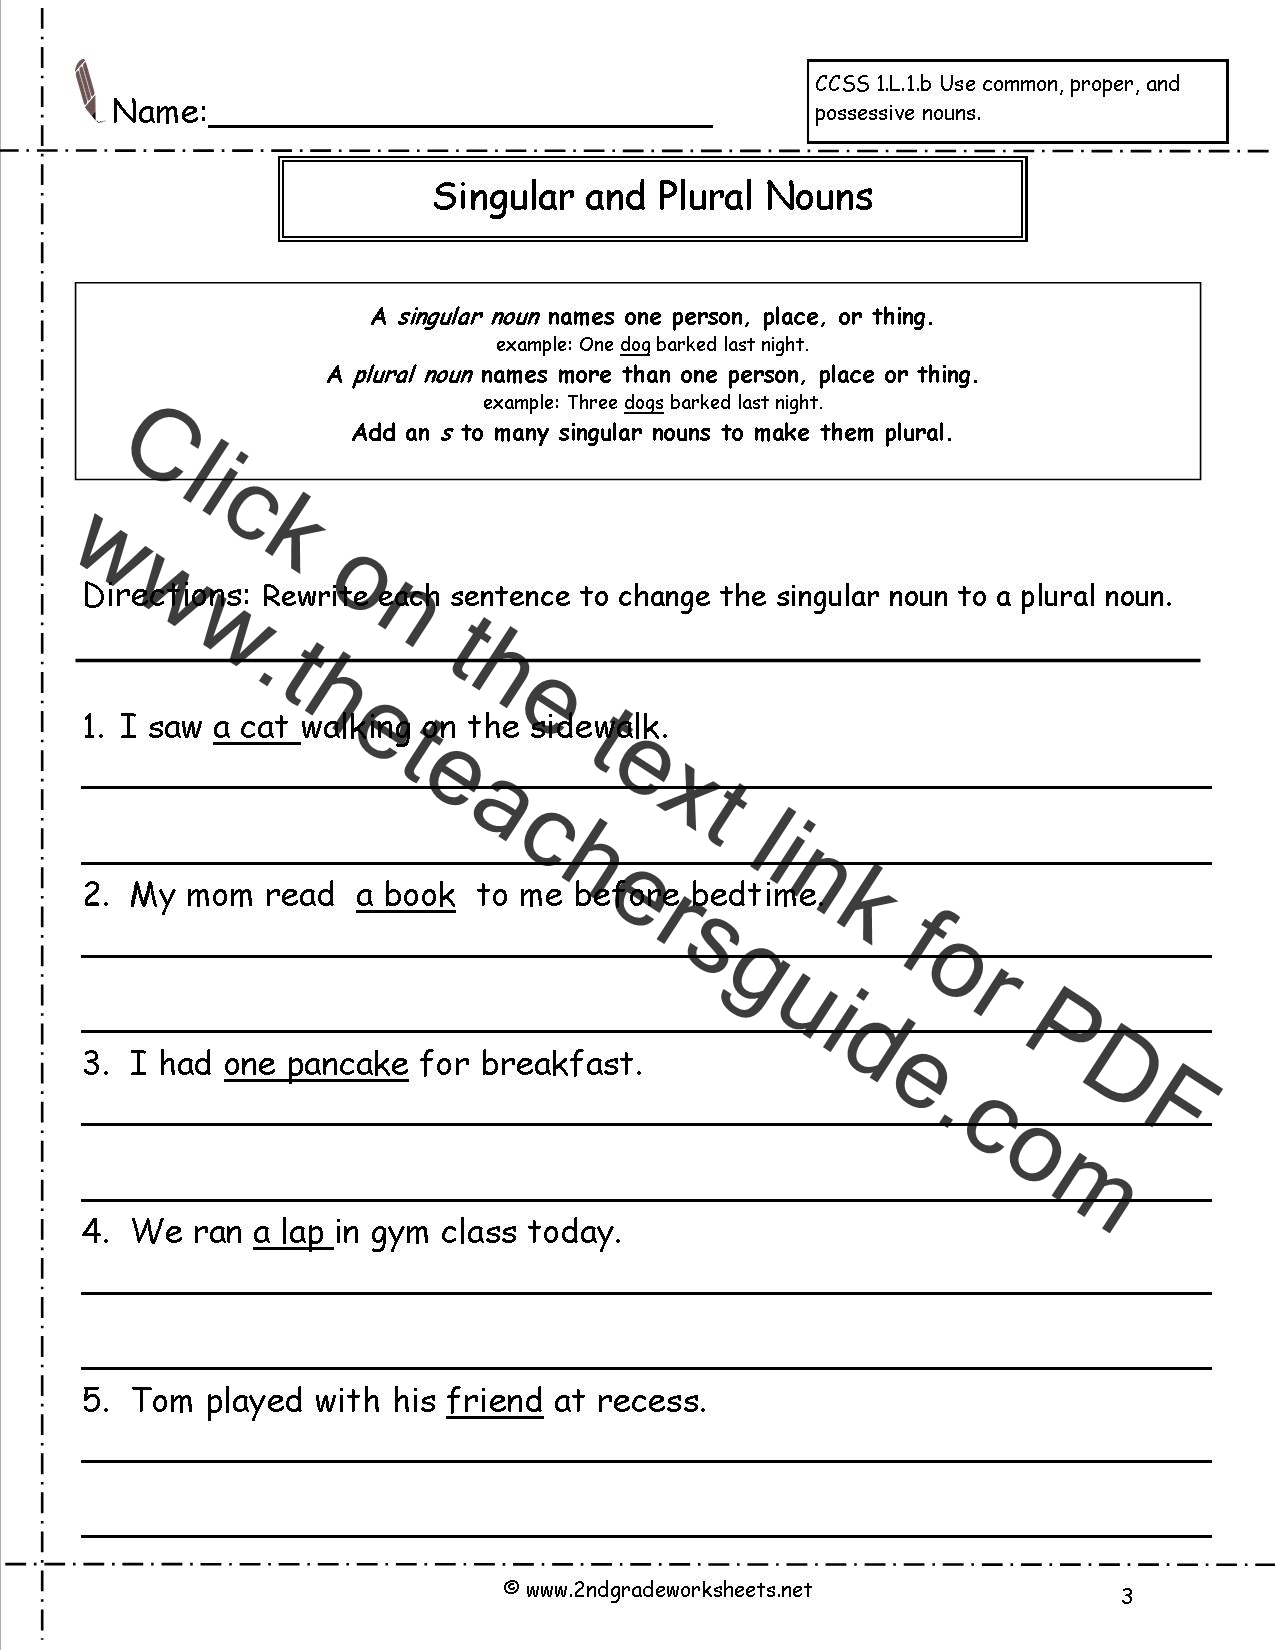 Worksheet Plural Nouns Worksheets singular and plural nouns worksheets worksheet